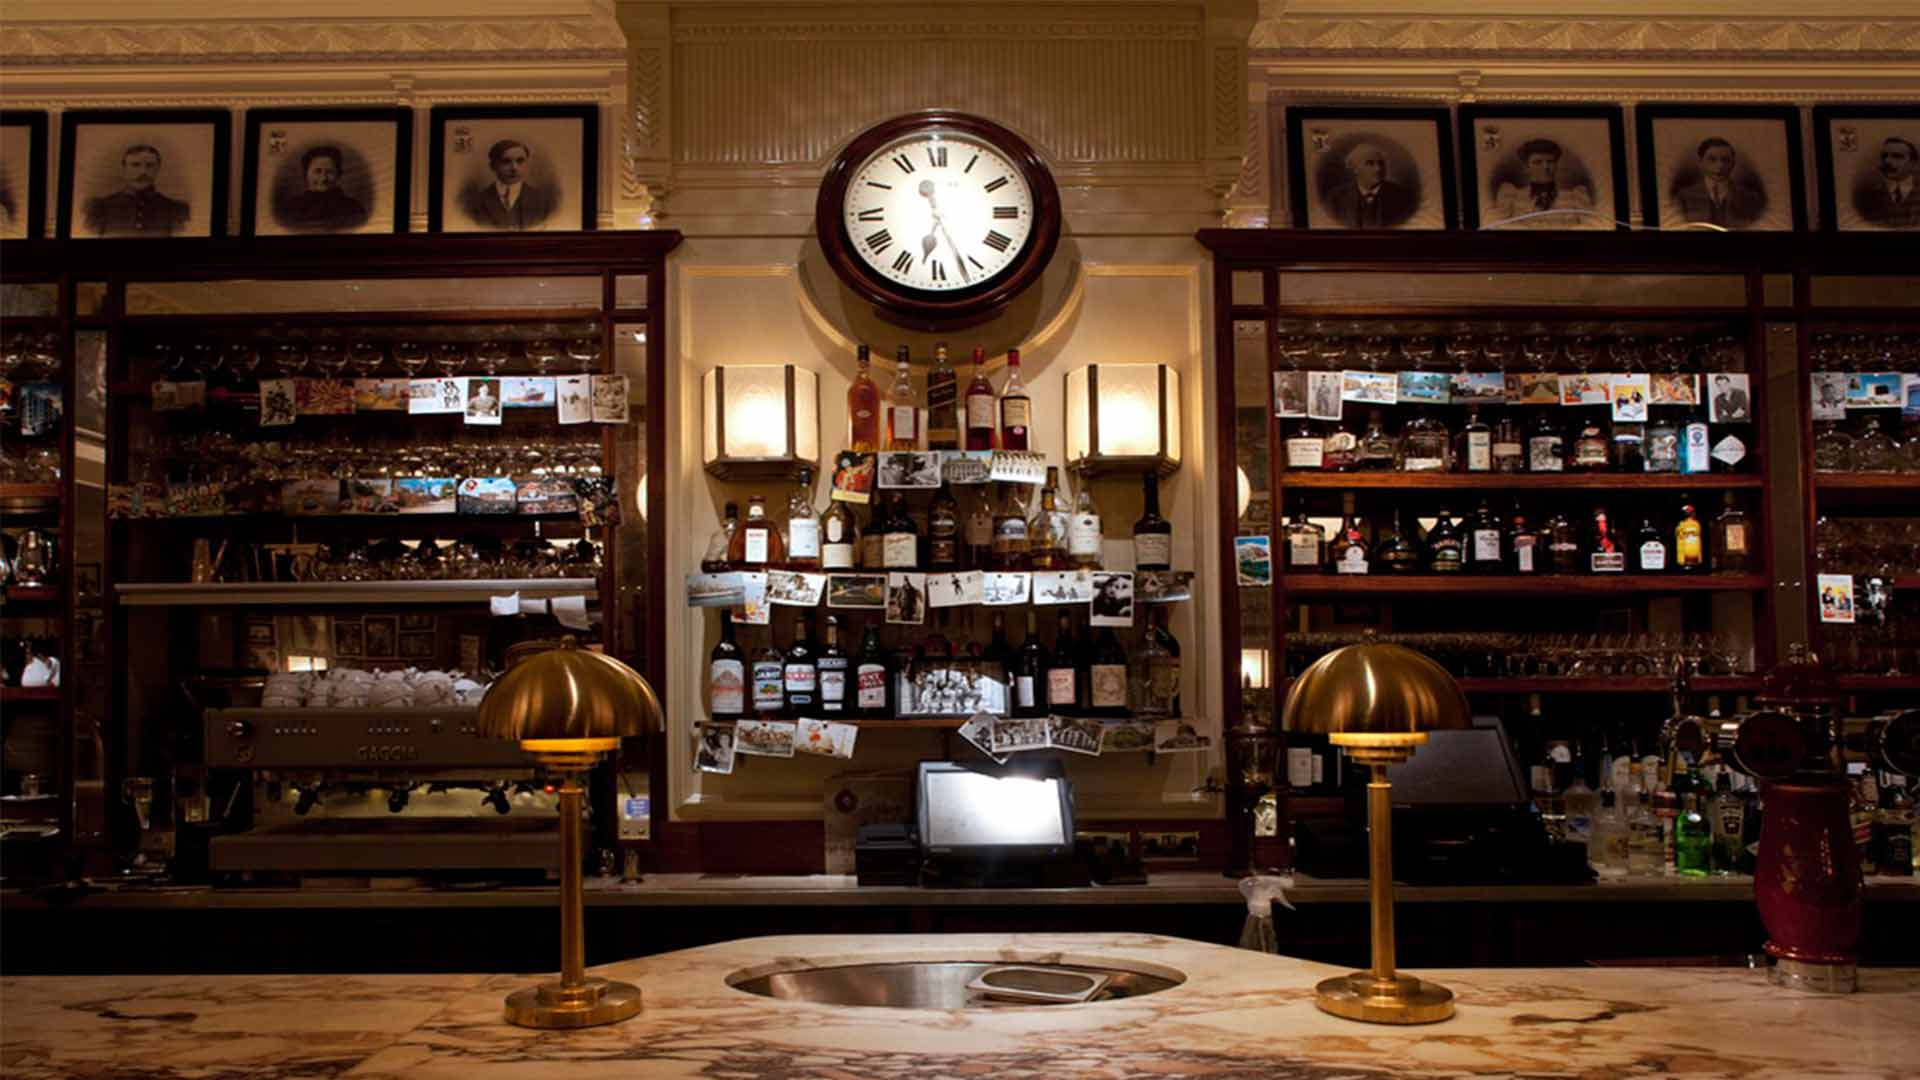 Restaurant Bar Wall Clock Shelving Lamps Architectural Lighting Design Nulty